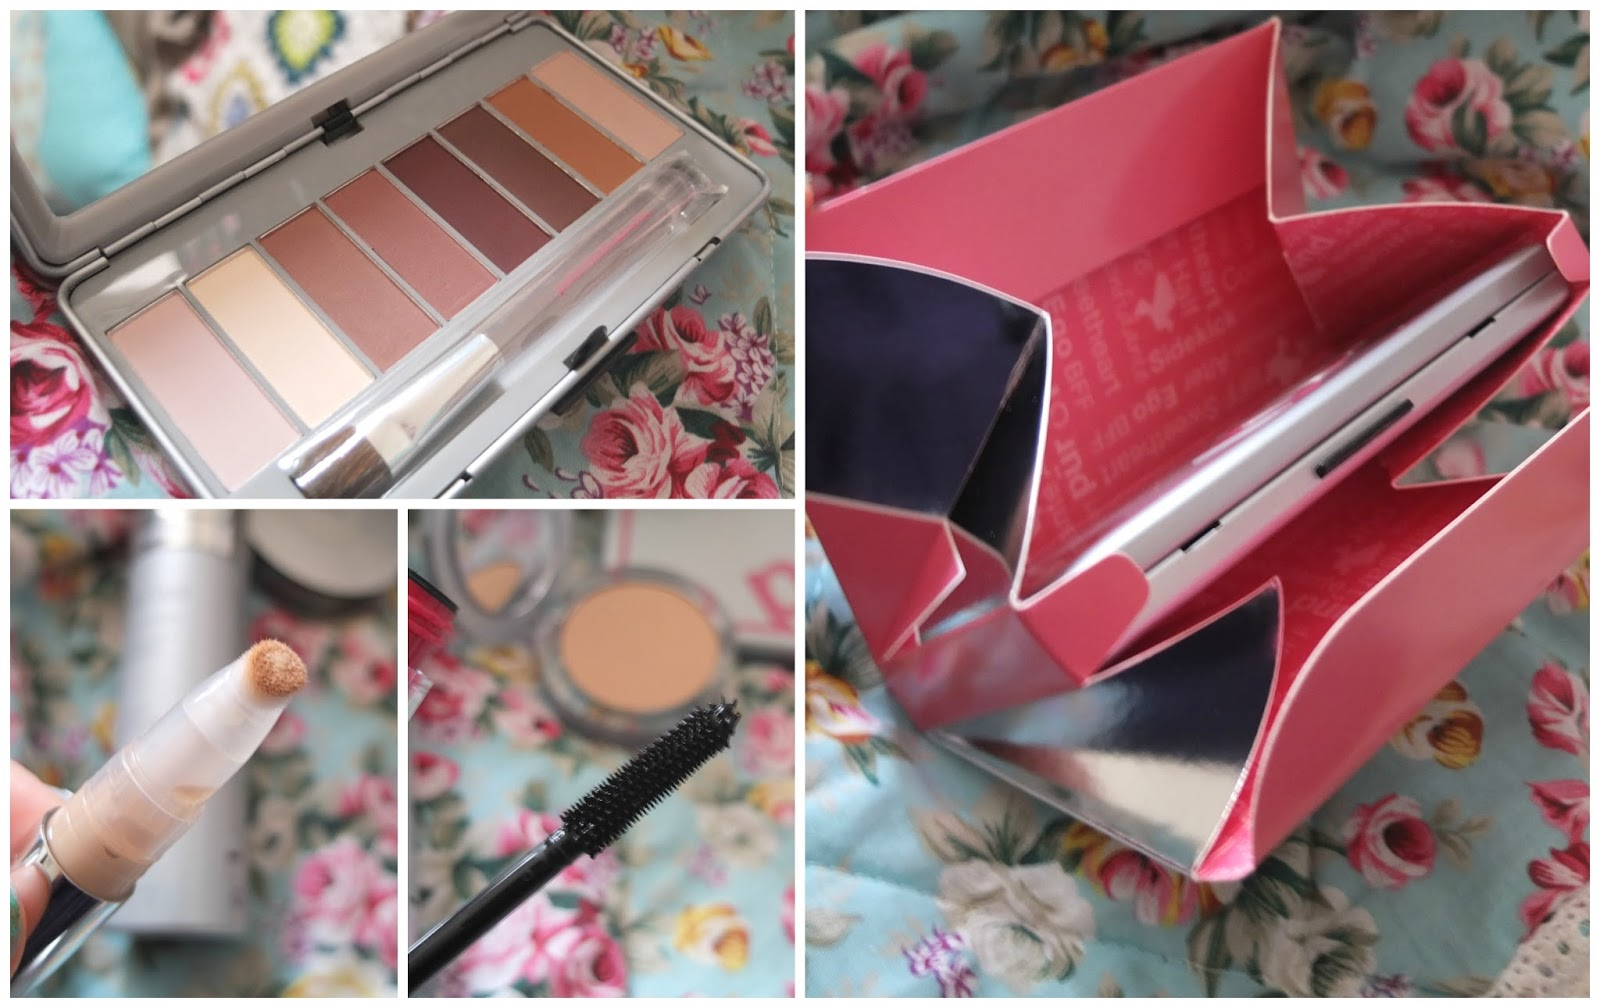 Every day make up featuring pur minerals make up on hello terri lowe blog.